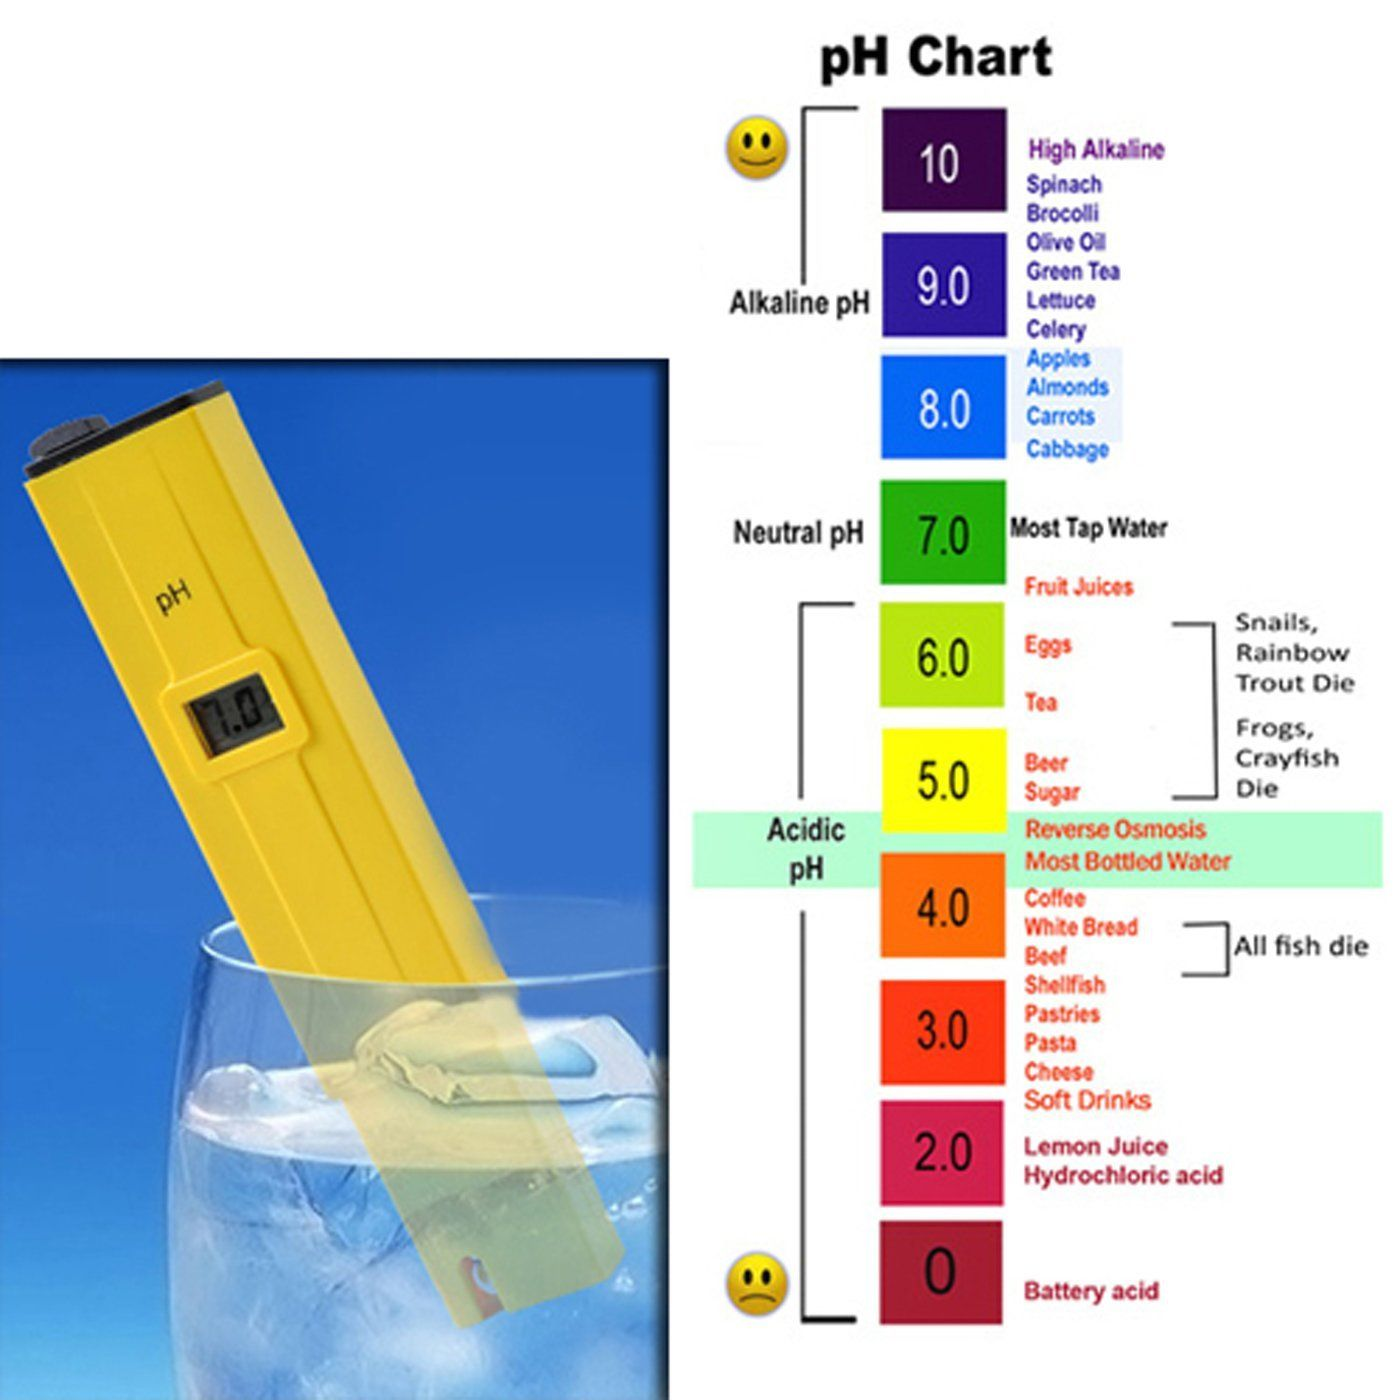 Water tester ppm diagram creating a mind map online 1990 22 re amazonsmile hde growers toolbox digital ph meter and tds water 65ba66a25744bdb37b3eeeb6b58ff03c 328622104037390707 water tester ppm diagram nvjuhfo Gallery